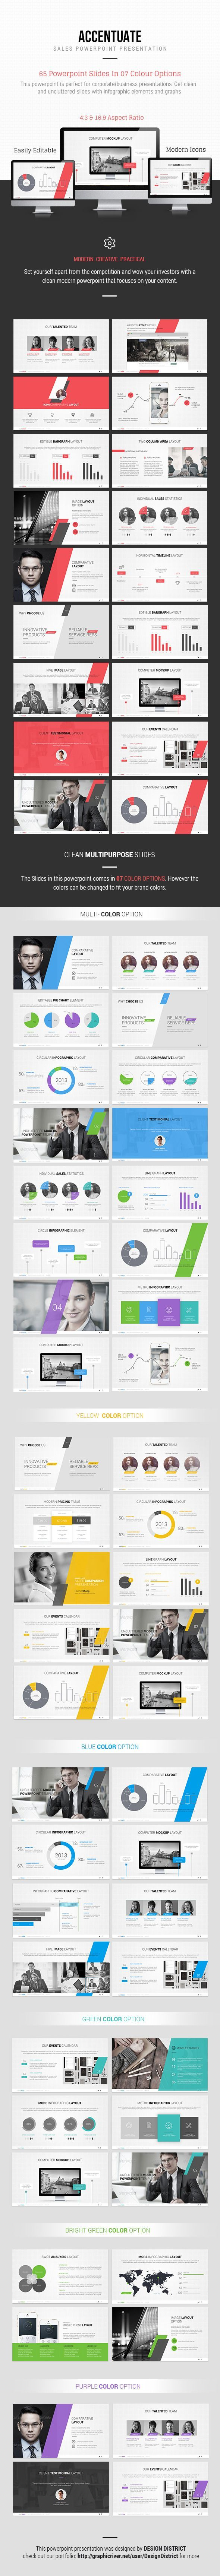 Sales Powerpoint Presentation - Business PowerPoint Templates